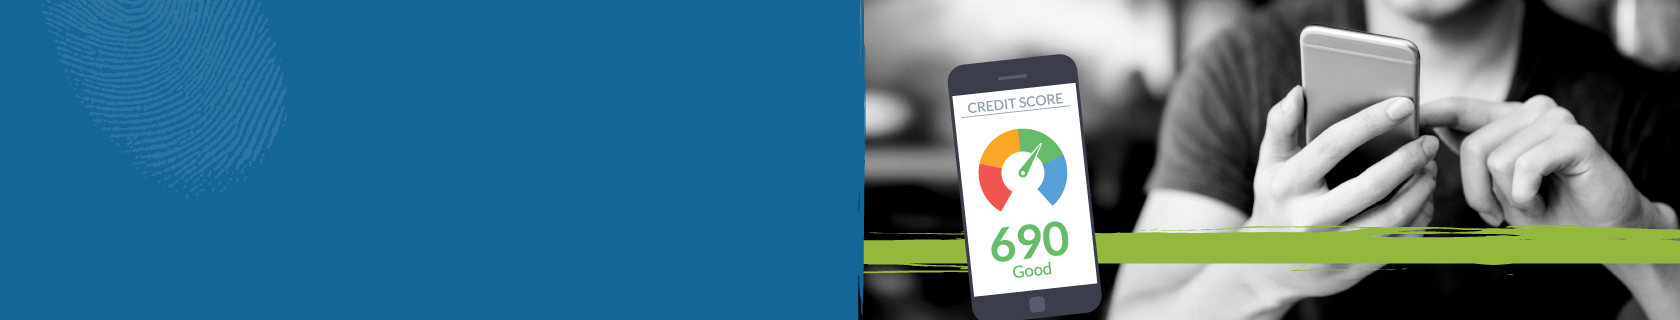 banner showing a person obtaining their credit score via their smartphone